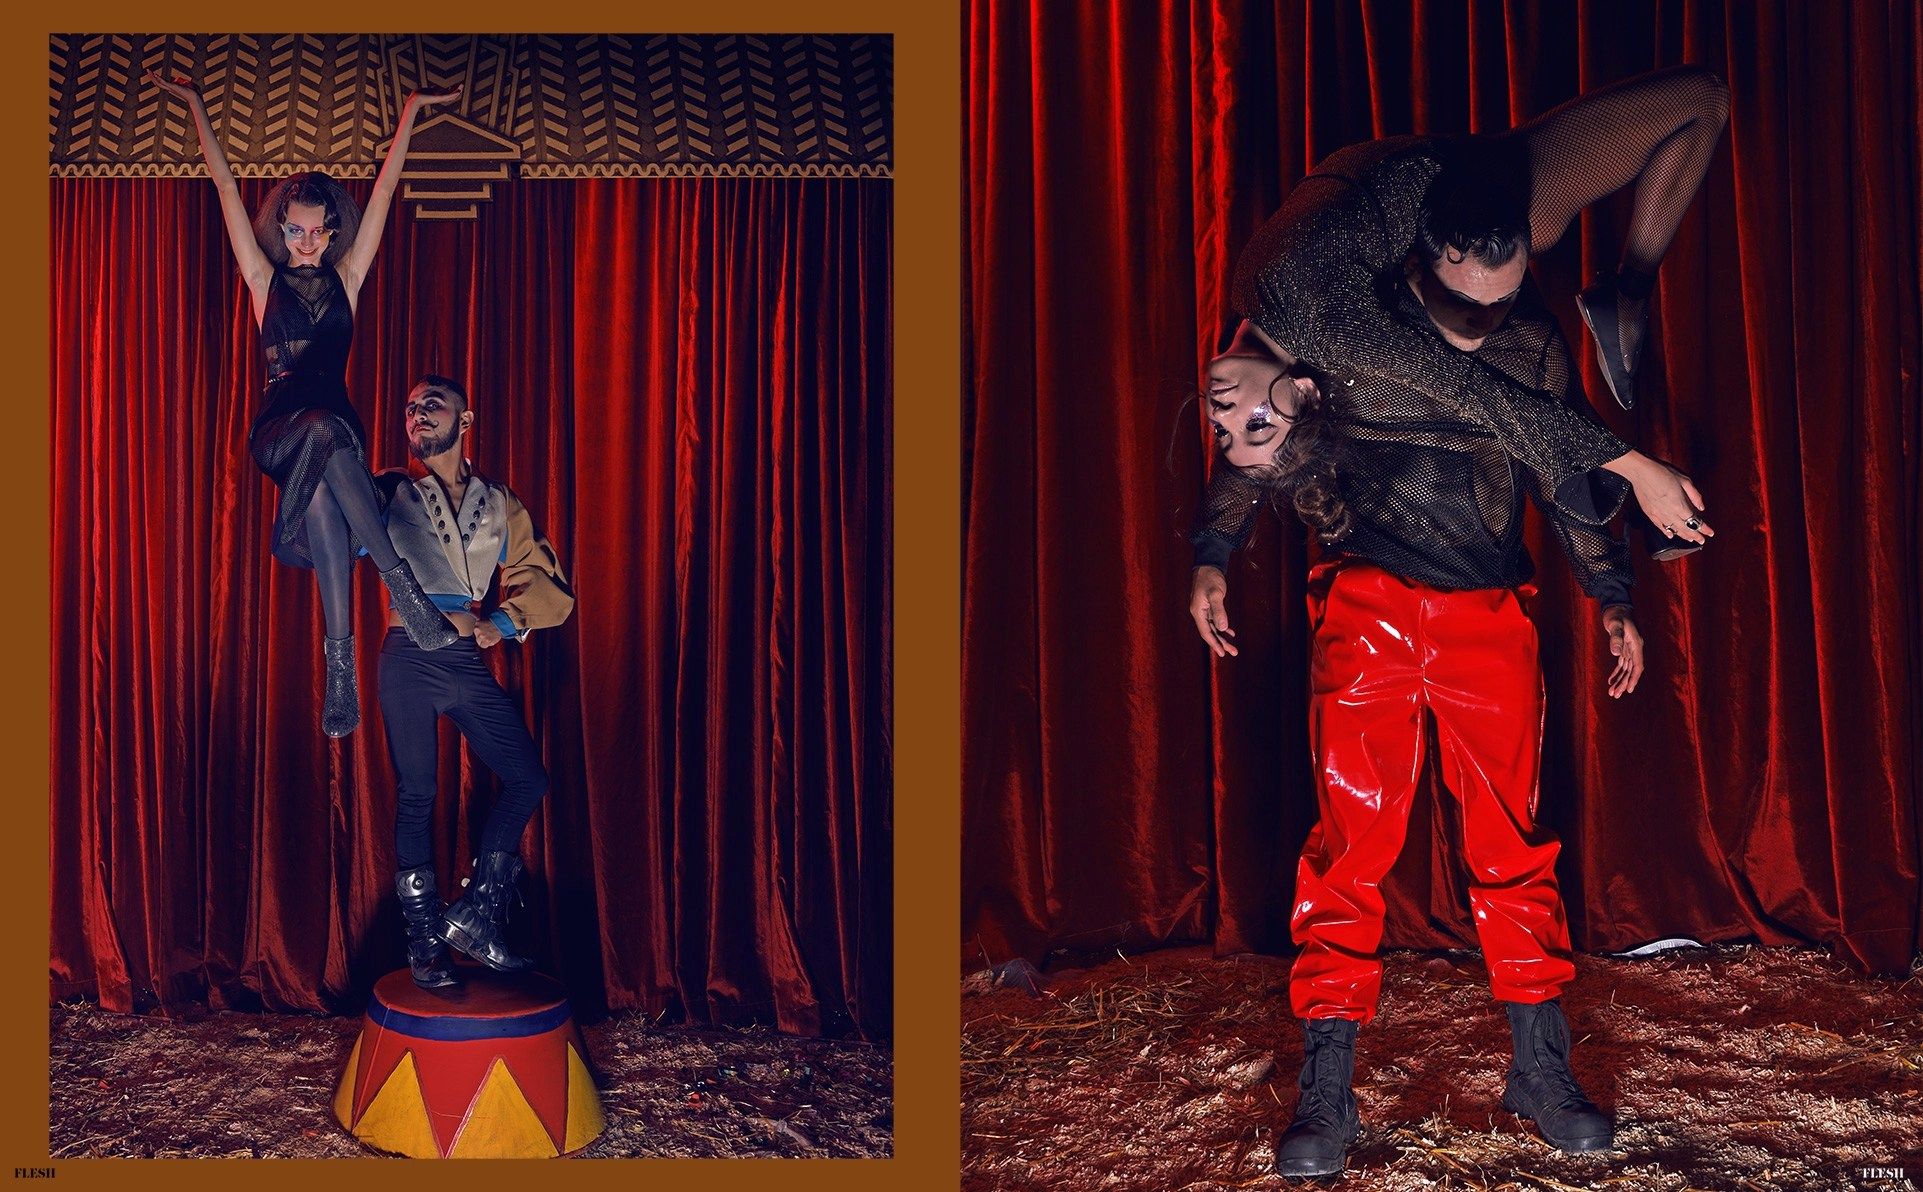 Enter the Circus PHOTO Ivan Aguirre STYLING Jannette Klein Universidad